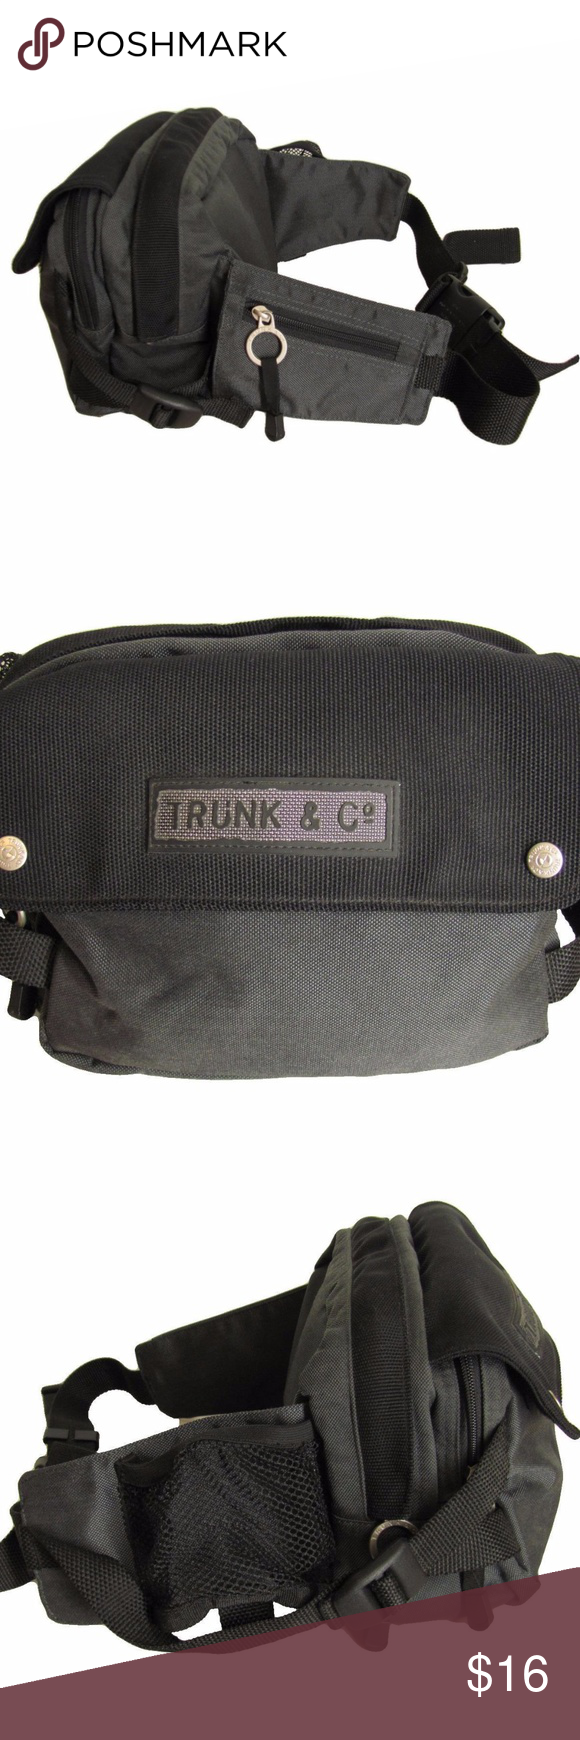 Samsonite Trunk En Co.Samsonite Trunk Co Waist Pack Black Gray Large Trunk Co By